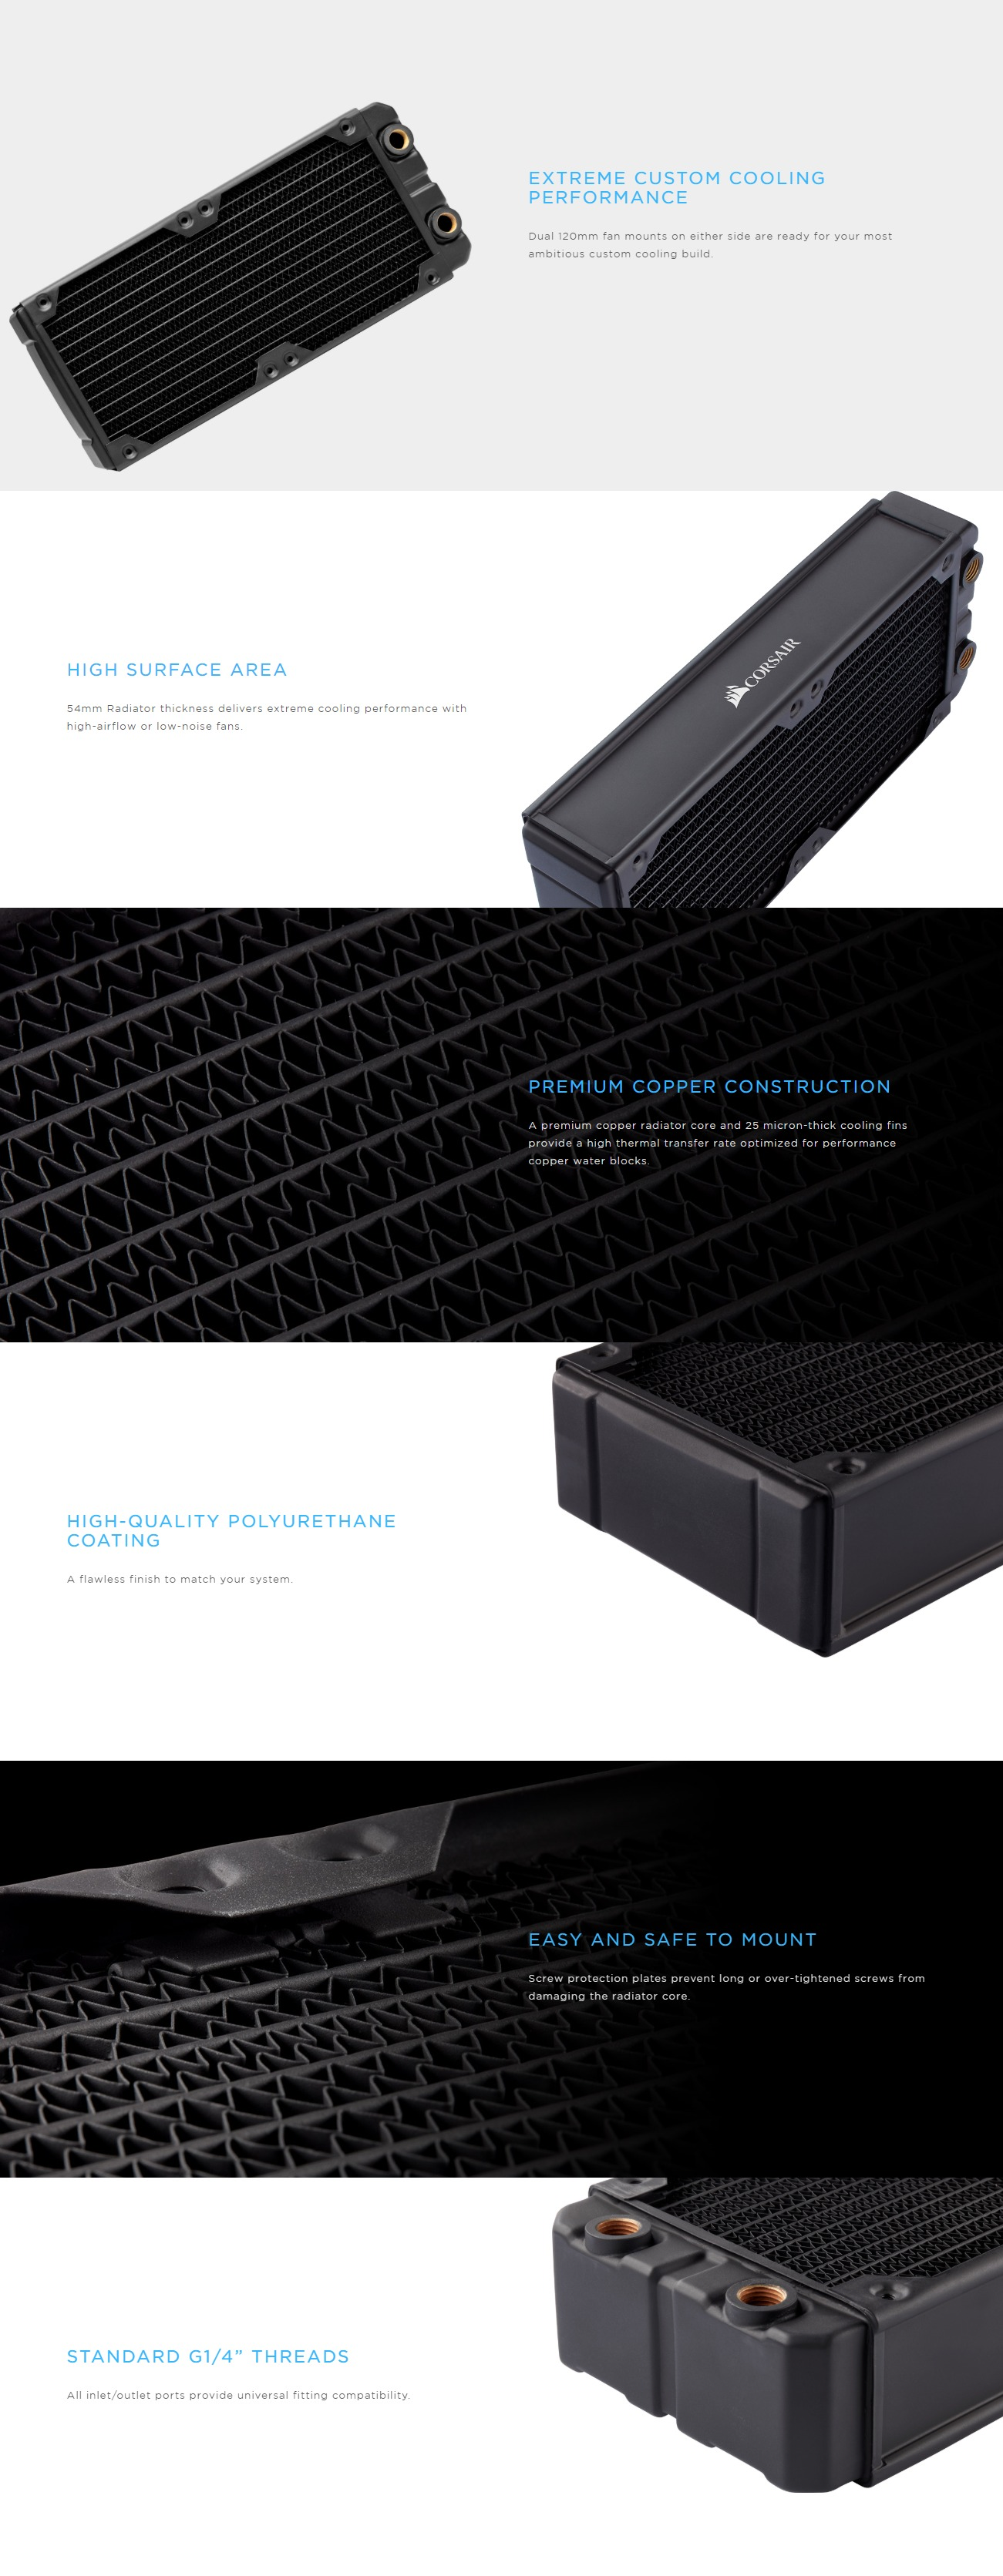 A large marketing image providing additional information about the product Corsair Hydro X Series XR7 360mm Radiator - Additional alt info not provided